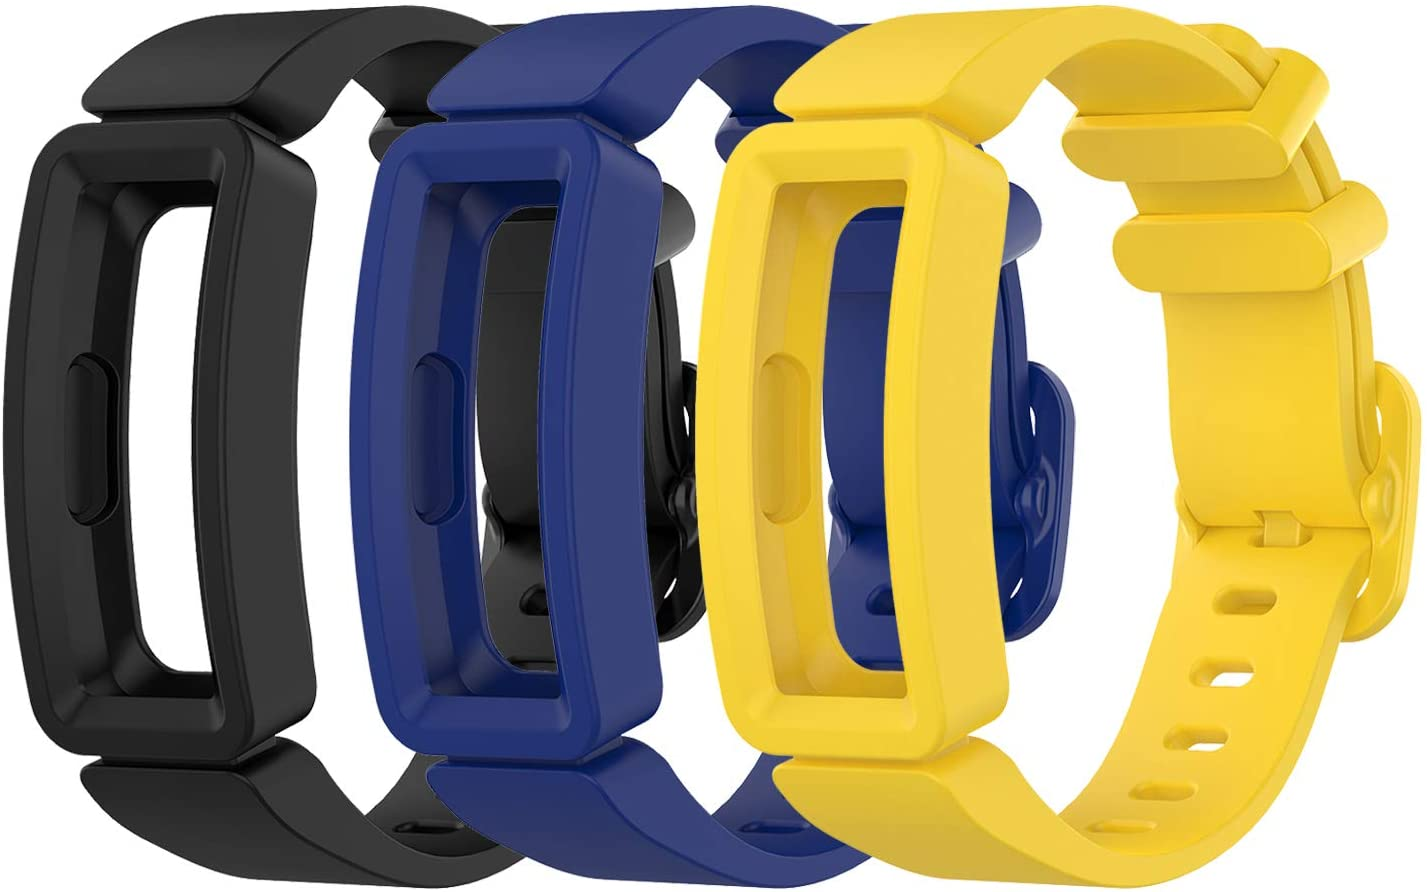 EEweca 3-Pack Bands Compatible with Fitbit Ace 2 Replacement Strap for Kids (Black, Night Sky, Neon Yellow)